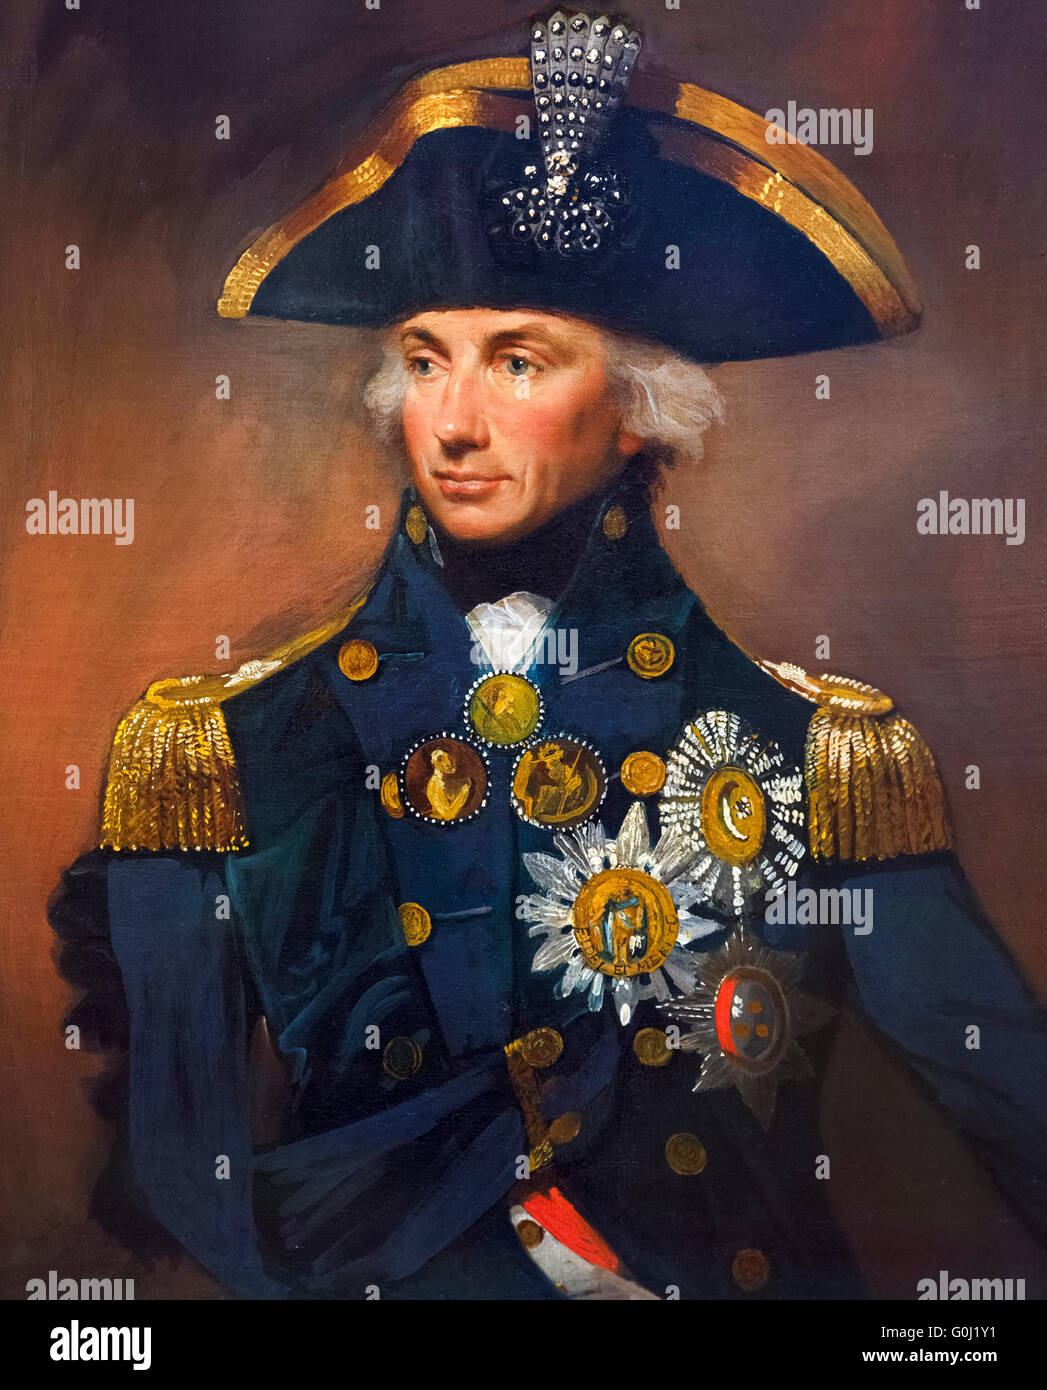 Lord Nelson. Portrait of Rear-Admiral Sir Horatio Nelson (1758-1805) by Lemuel Francis Abbot, oil on canvas, 1799. - Stock Image